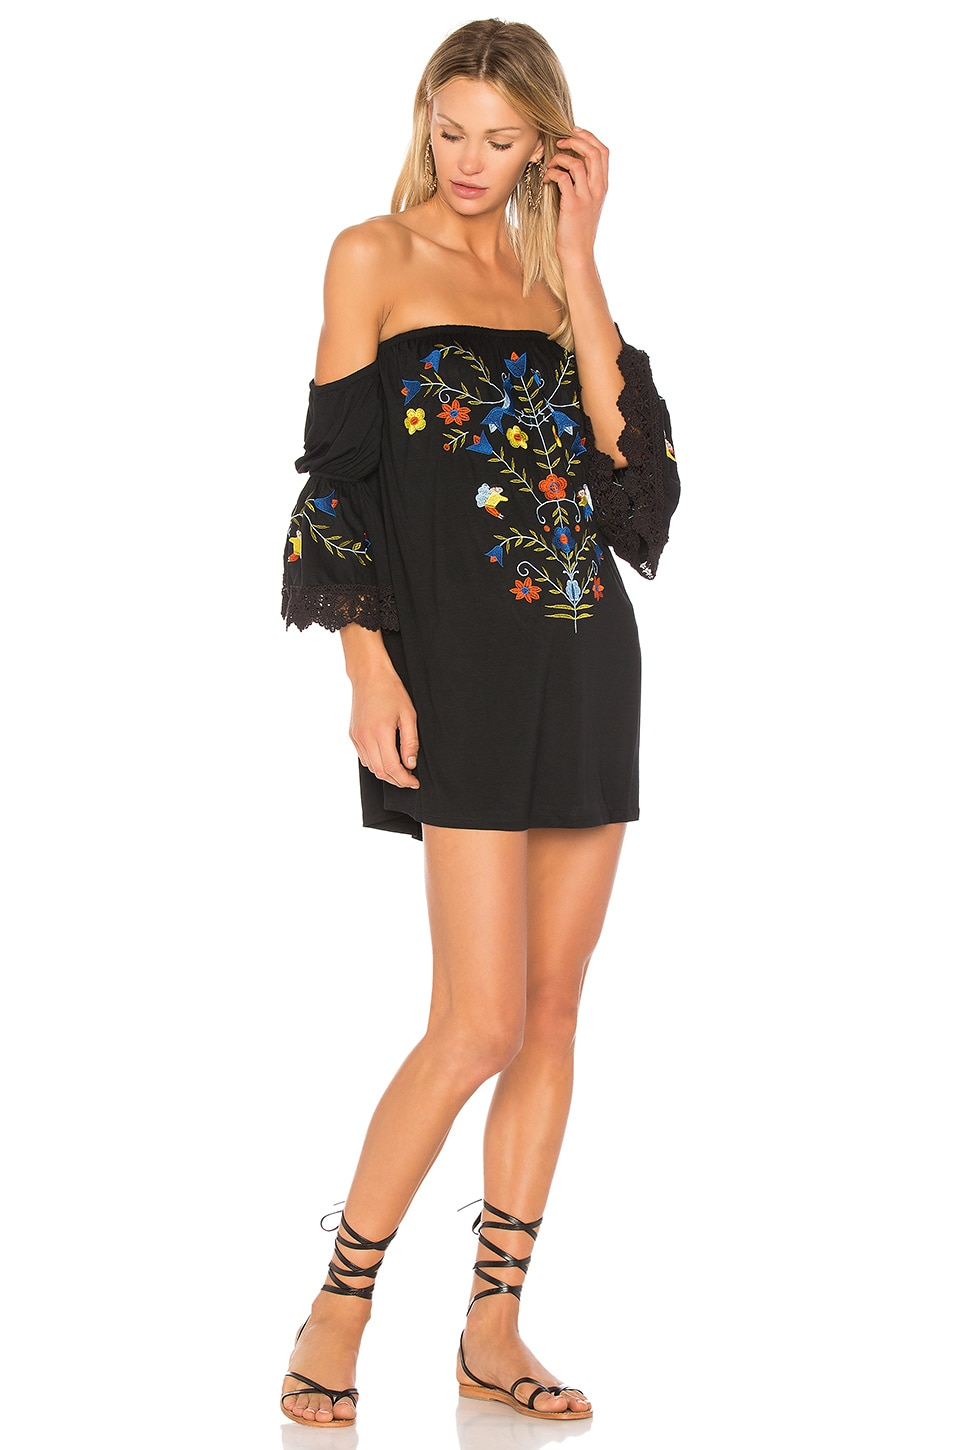 VAVA by Joy Han Fabiola Dress in Black